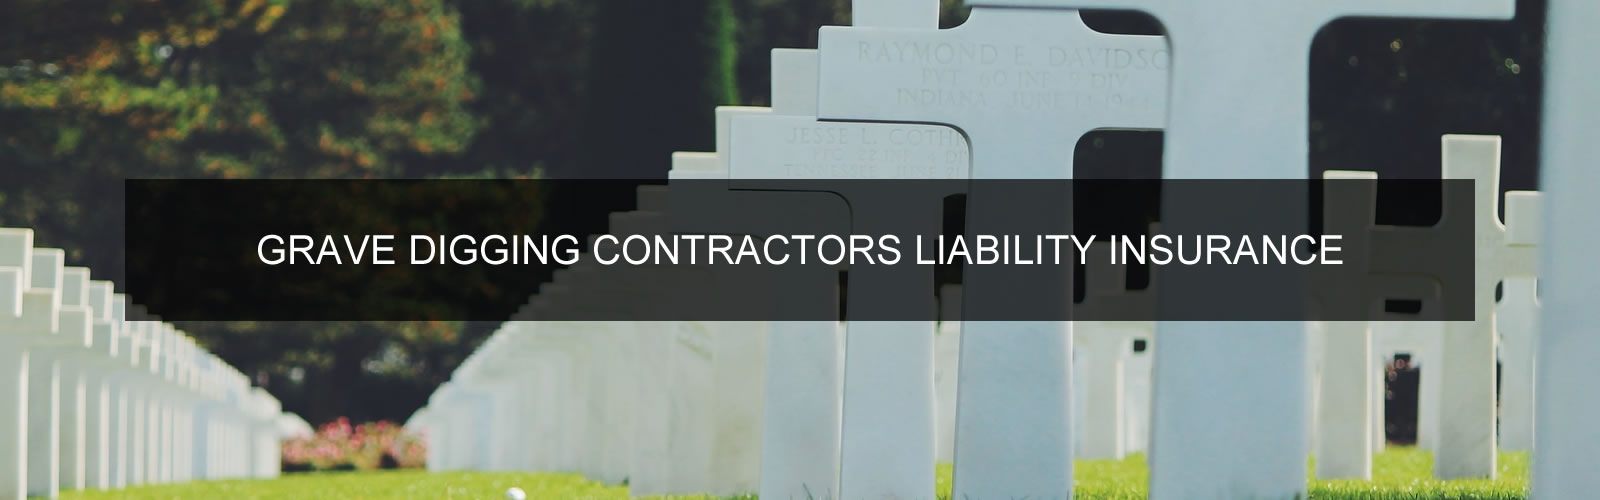 Grave Digging Contractors Liability Insurance